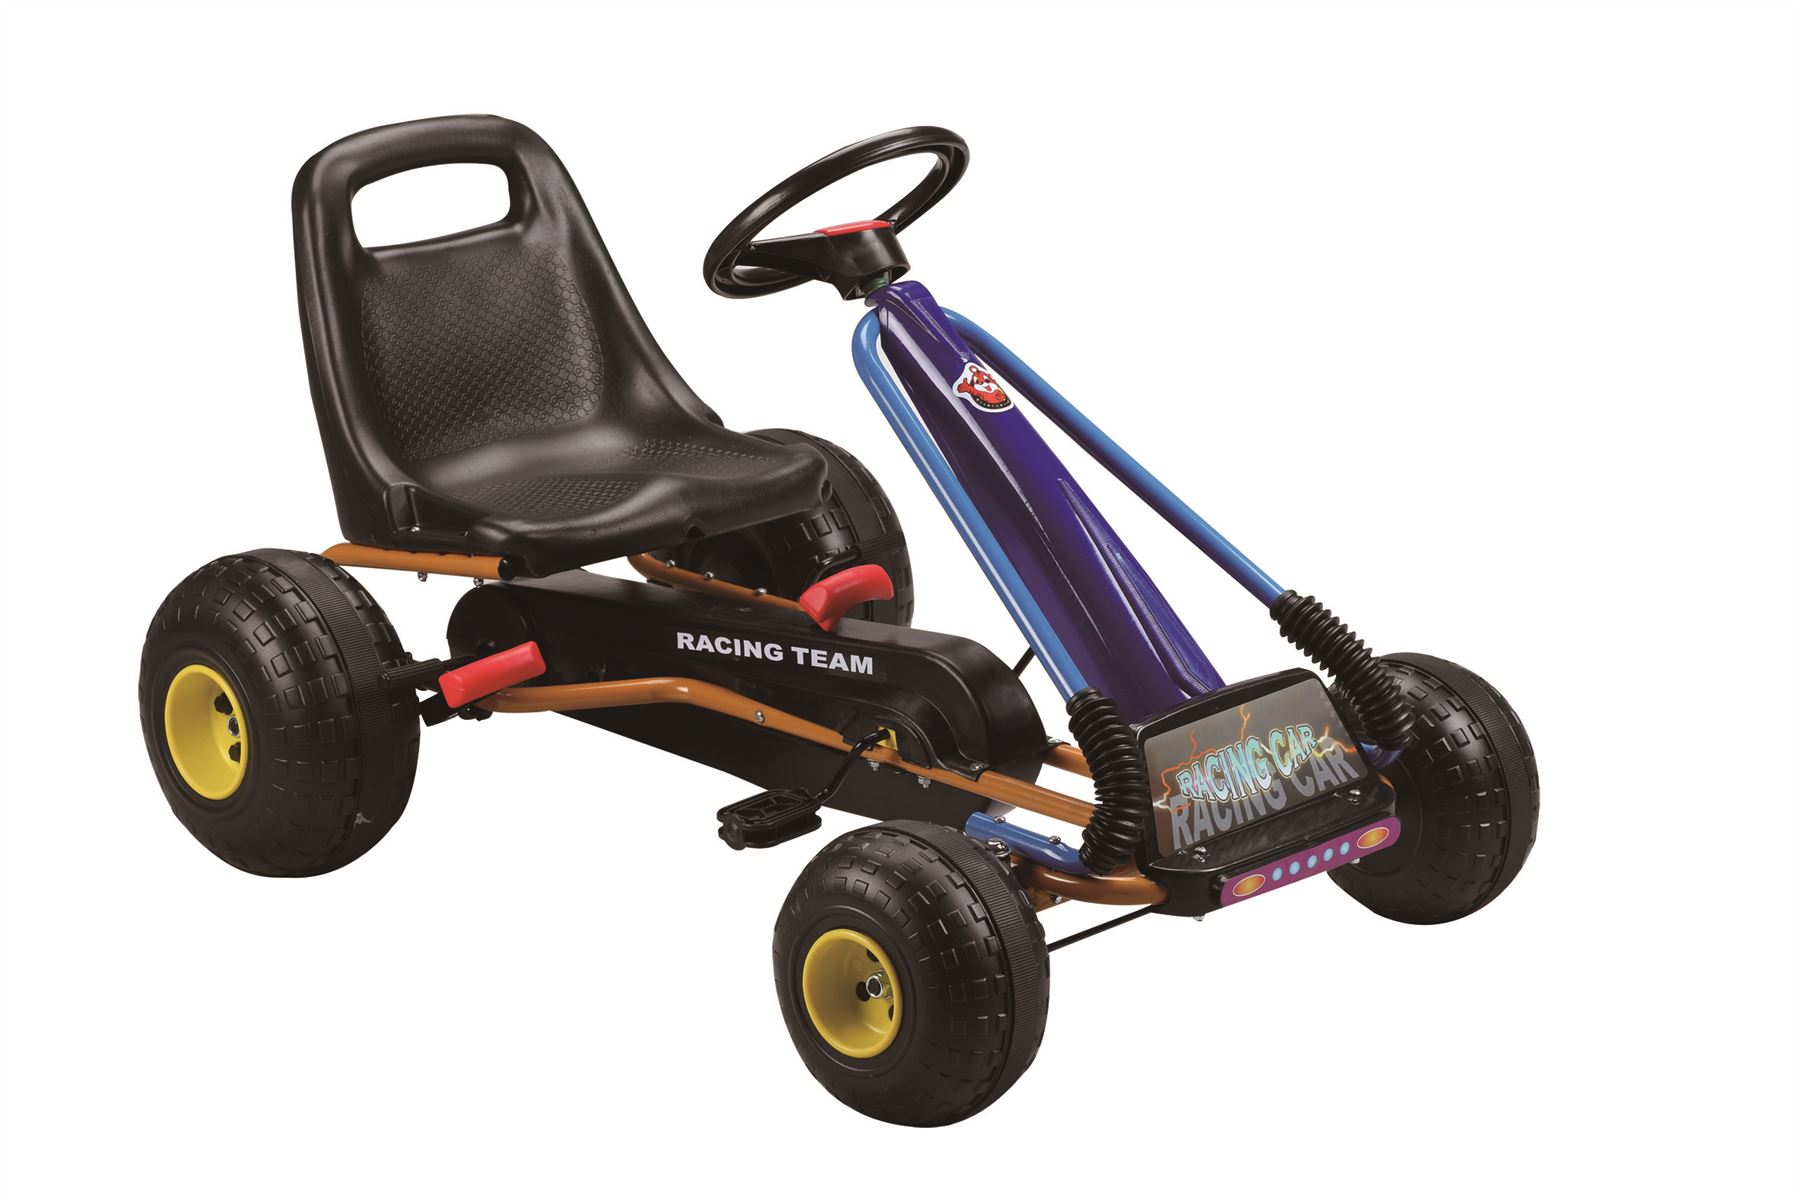 CHILDRENS KIDS PEDAL GO KART CART WITH ADJUSTABLE SEAT AND